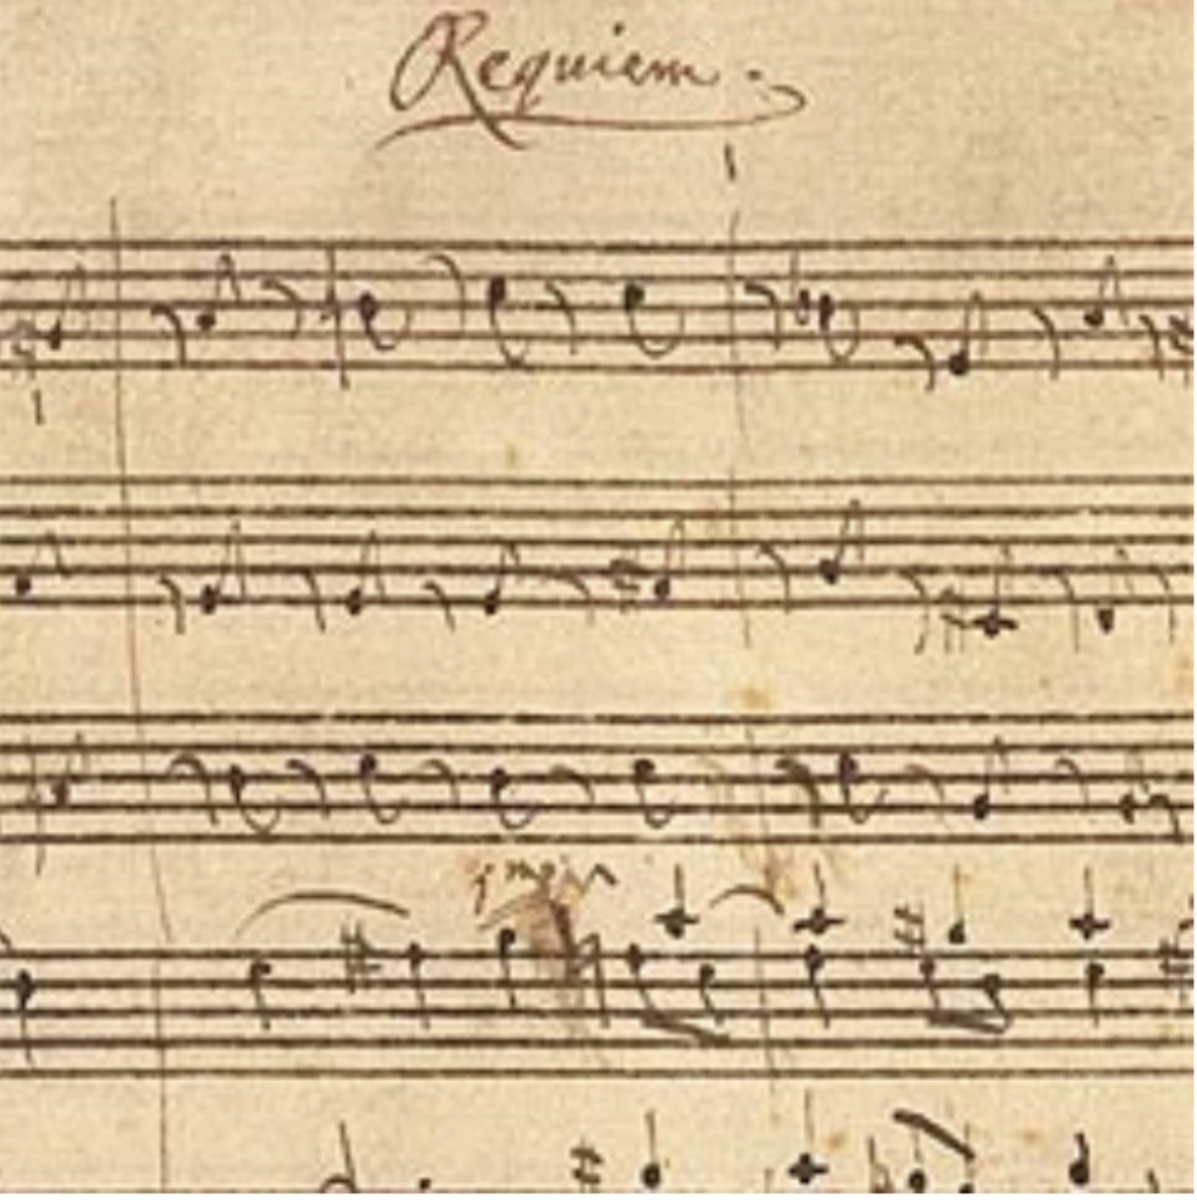 The original Requiem score.